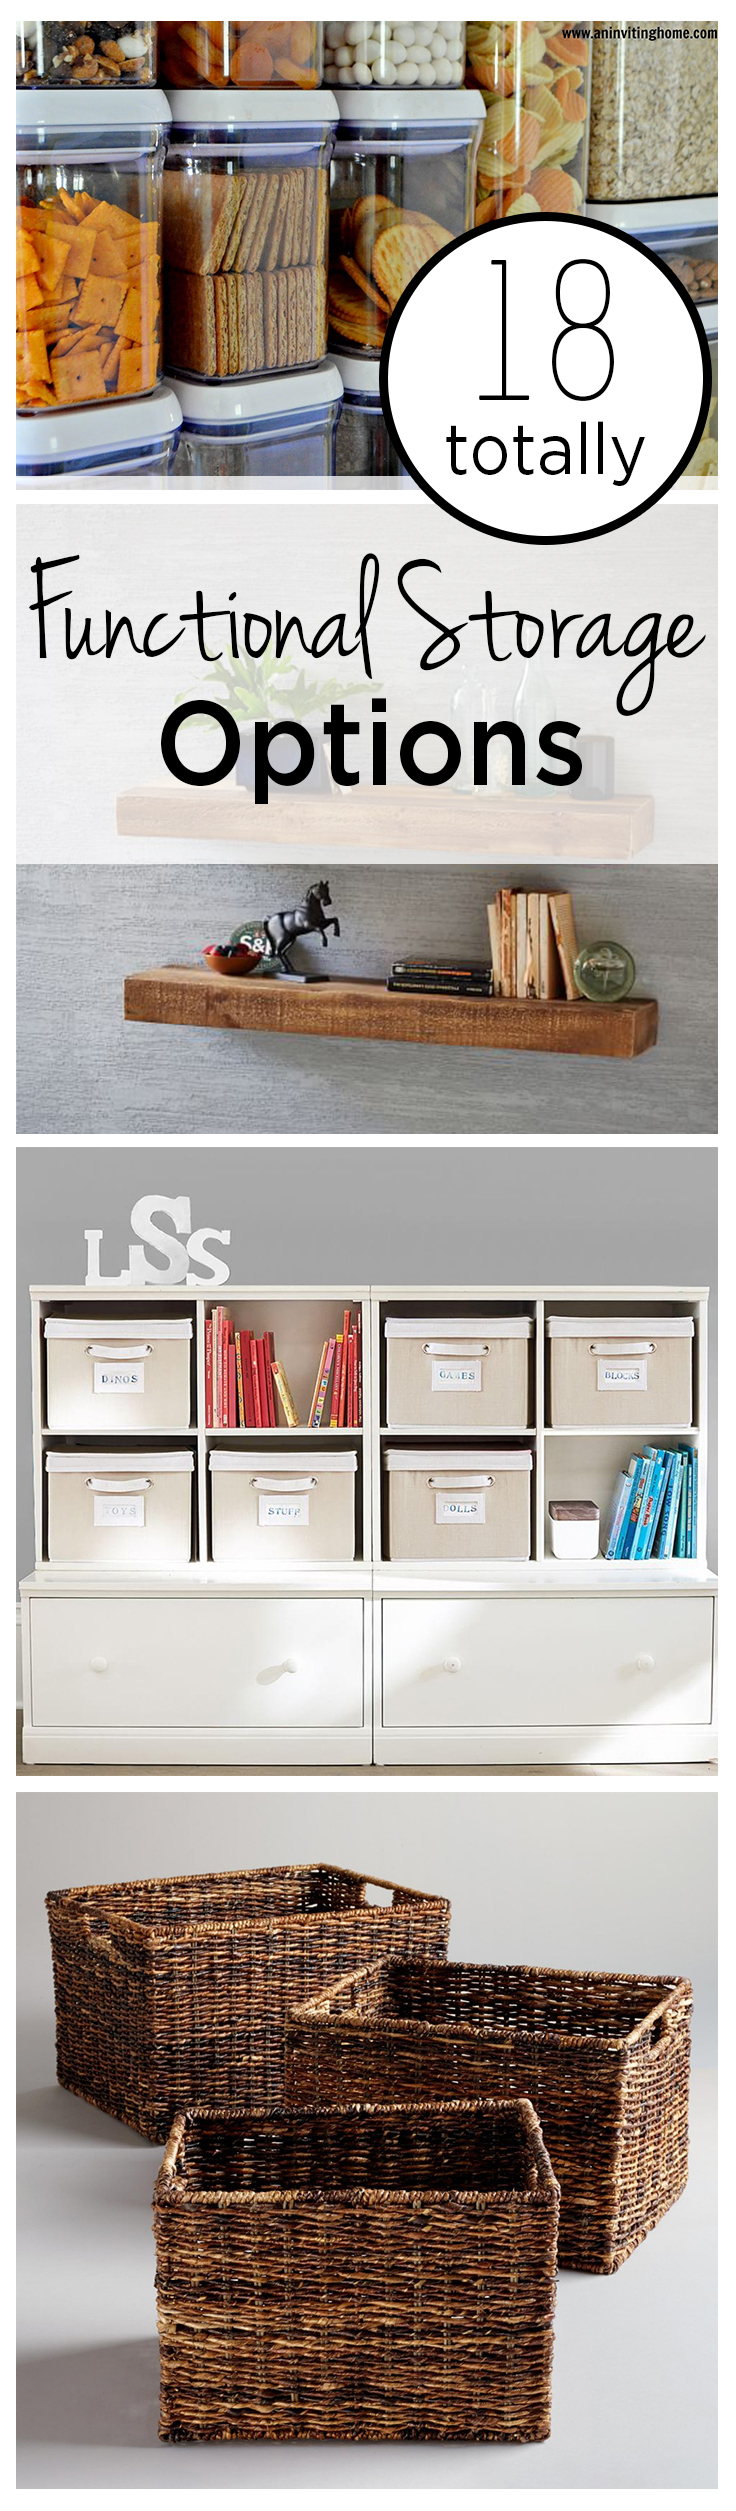 Storage Hacks, Small Space Living, Storage Ideas, Home Organization, Clutter Free Home, Declutter Your Home, How to Declutter Your Home, Cleaning and Organization, Popular Pin